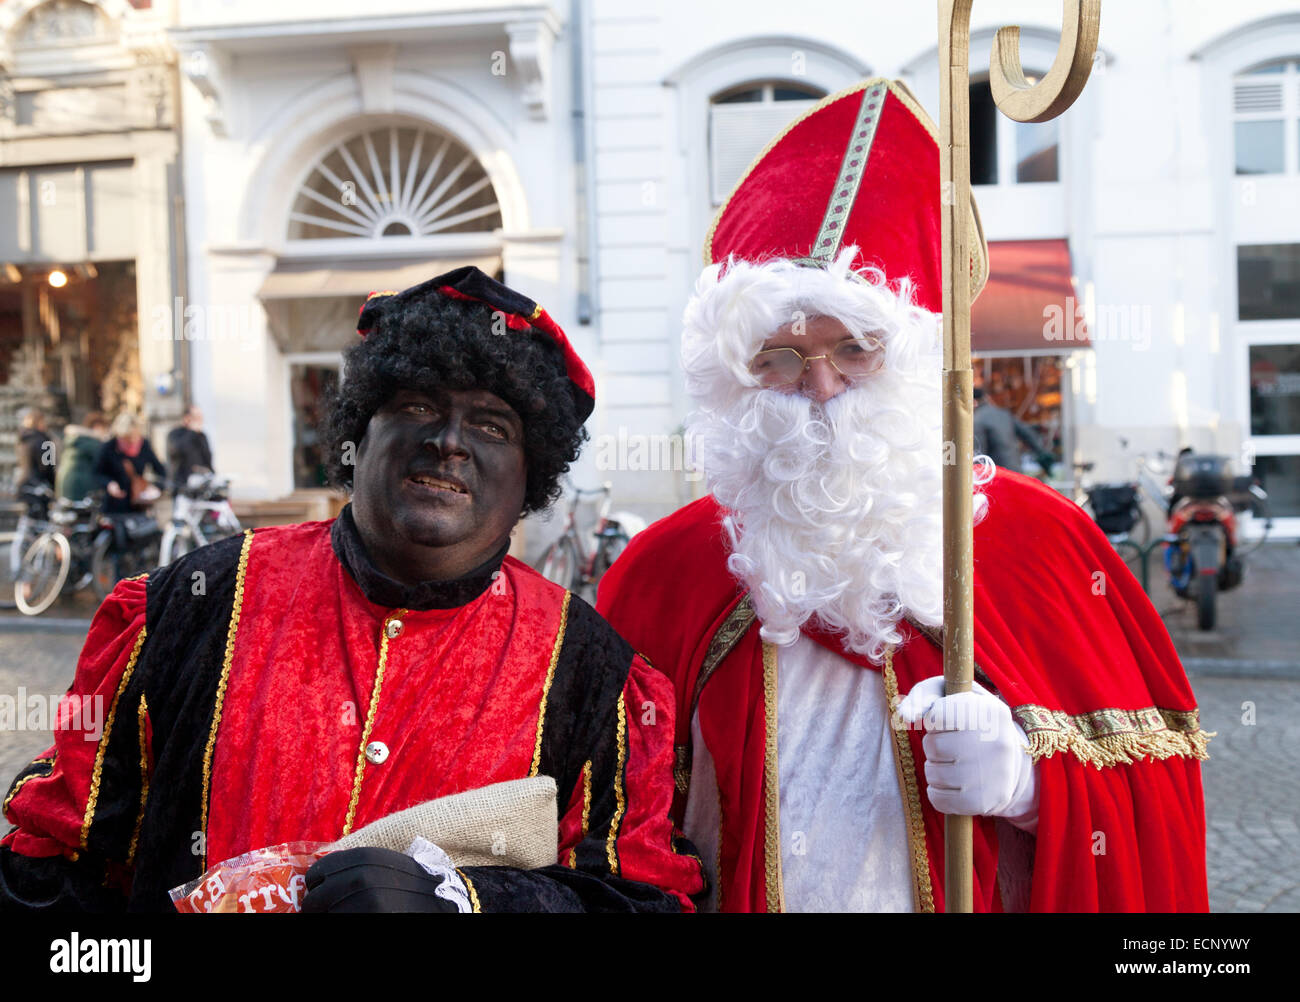 Black Pete Christmas History.Saint Pete Stock Photos Saint Pete Stock Images Alamy